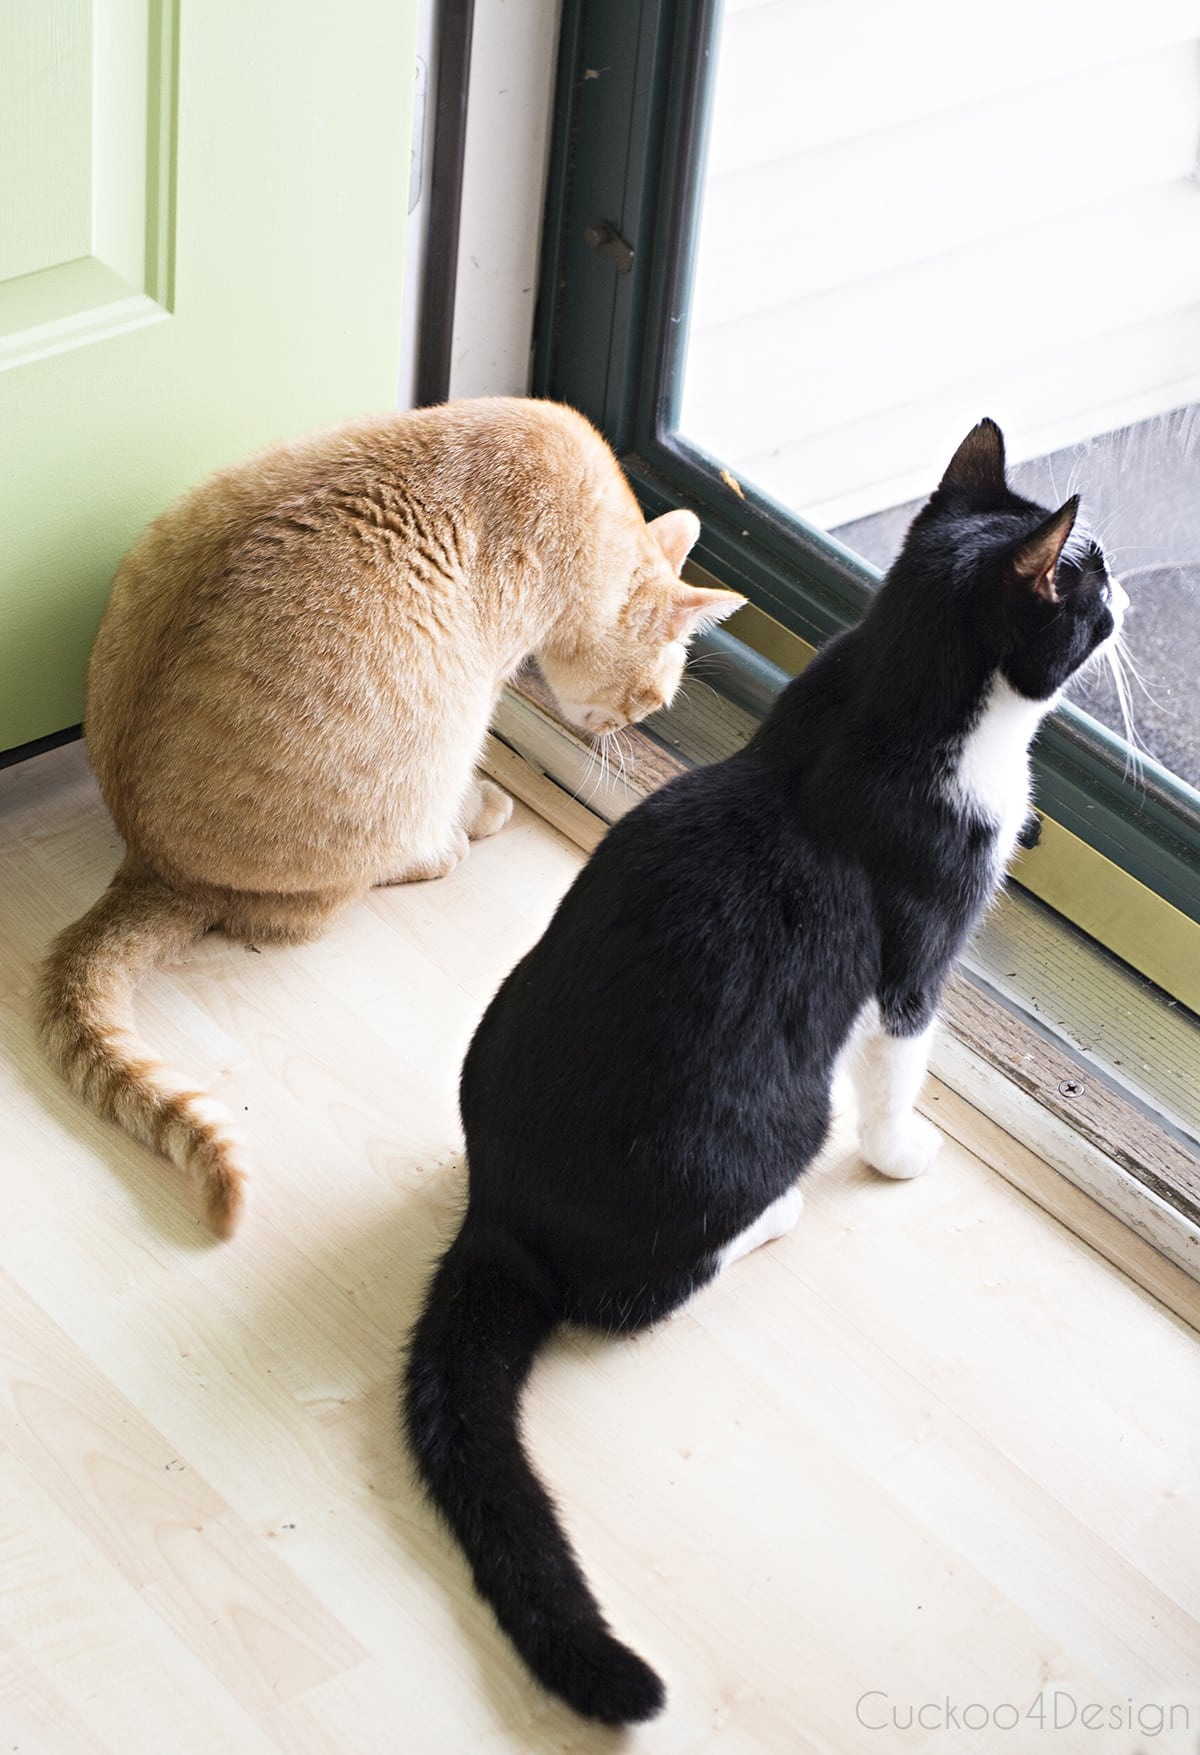 orange tabby and tuxedo cat by the front door